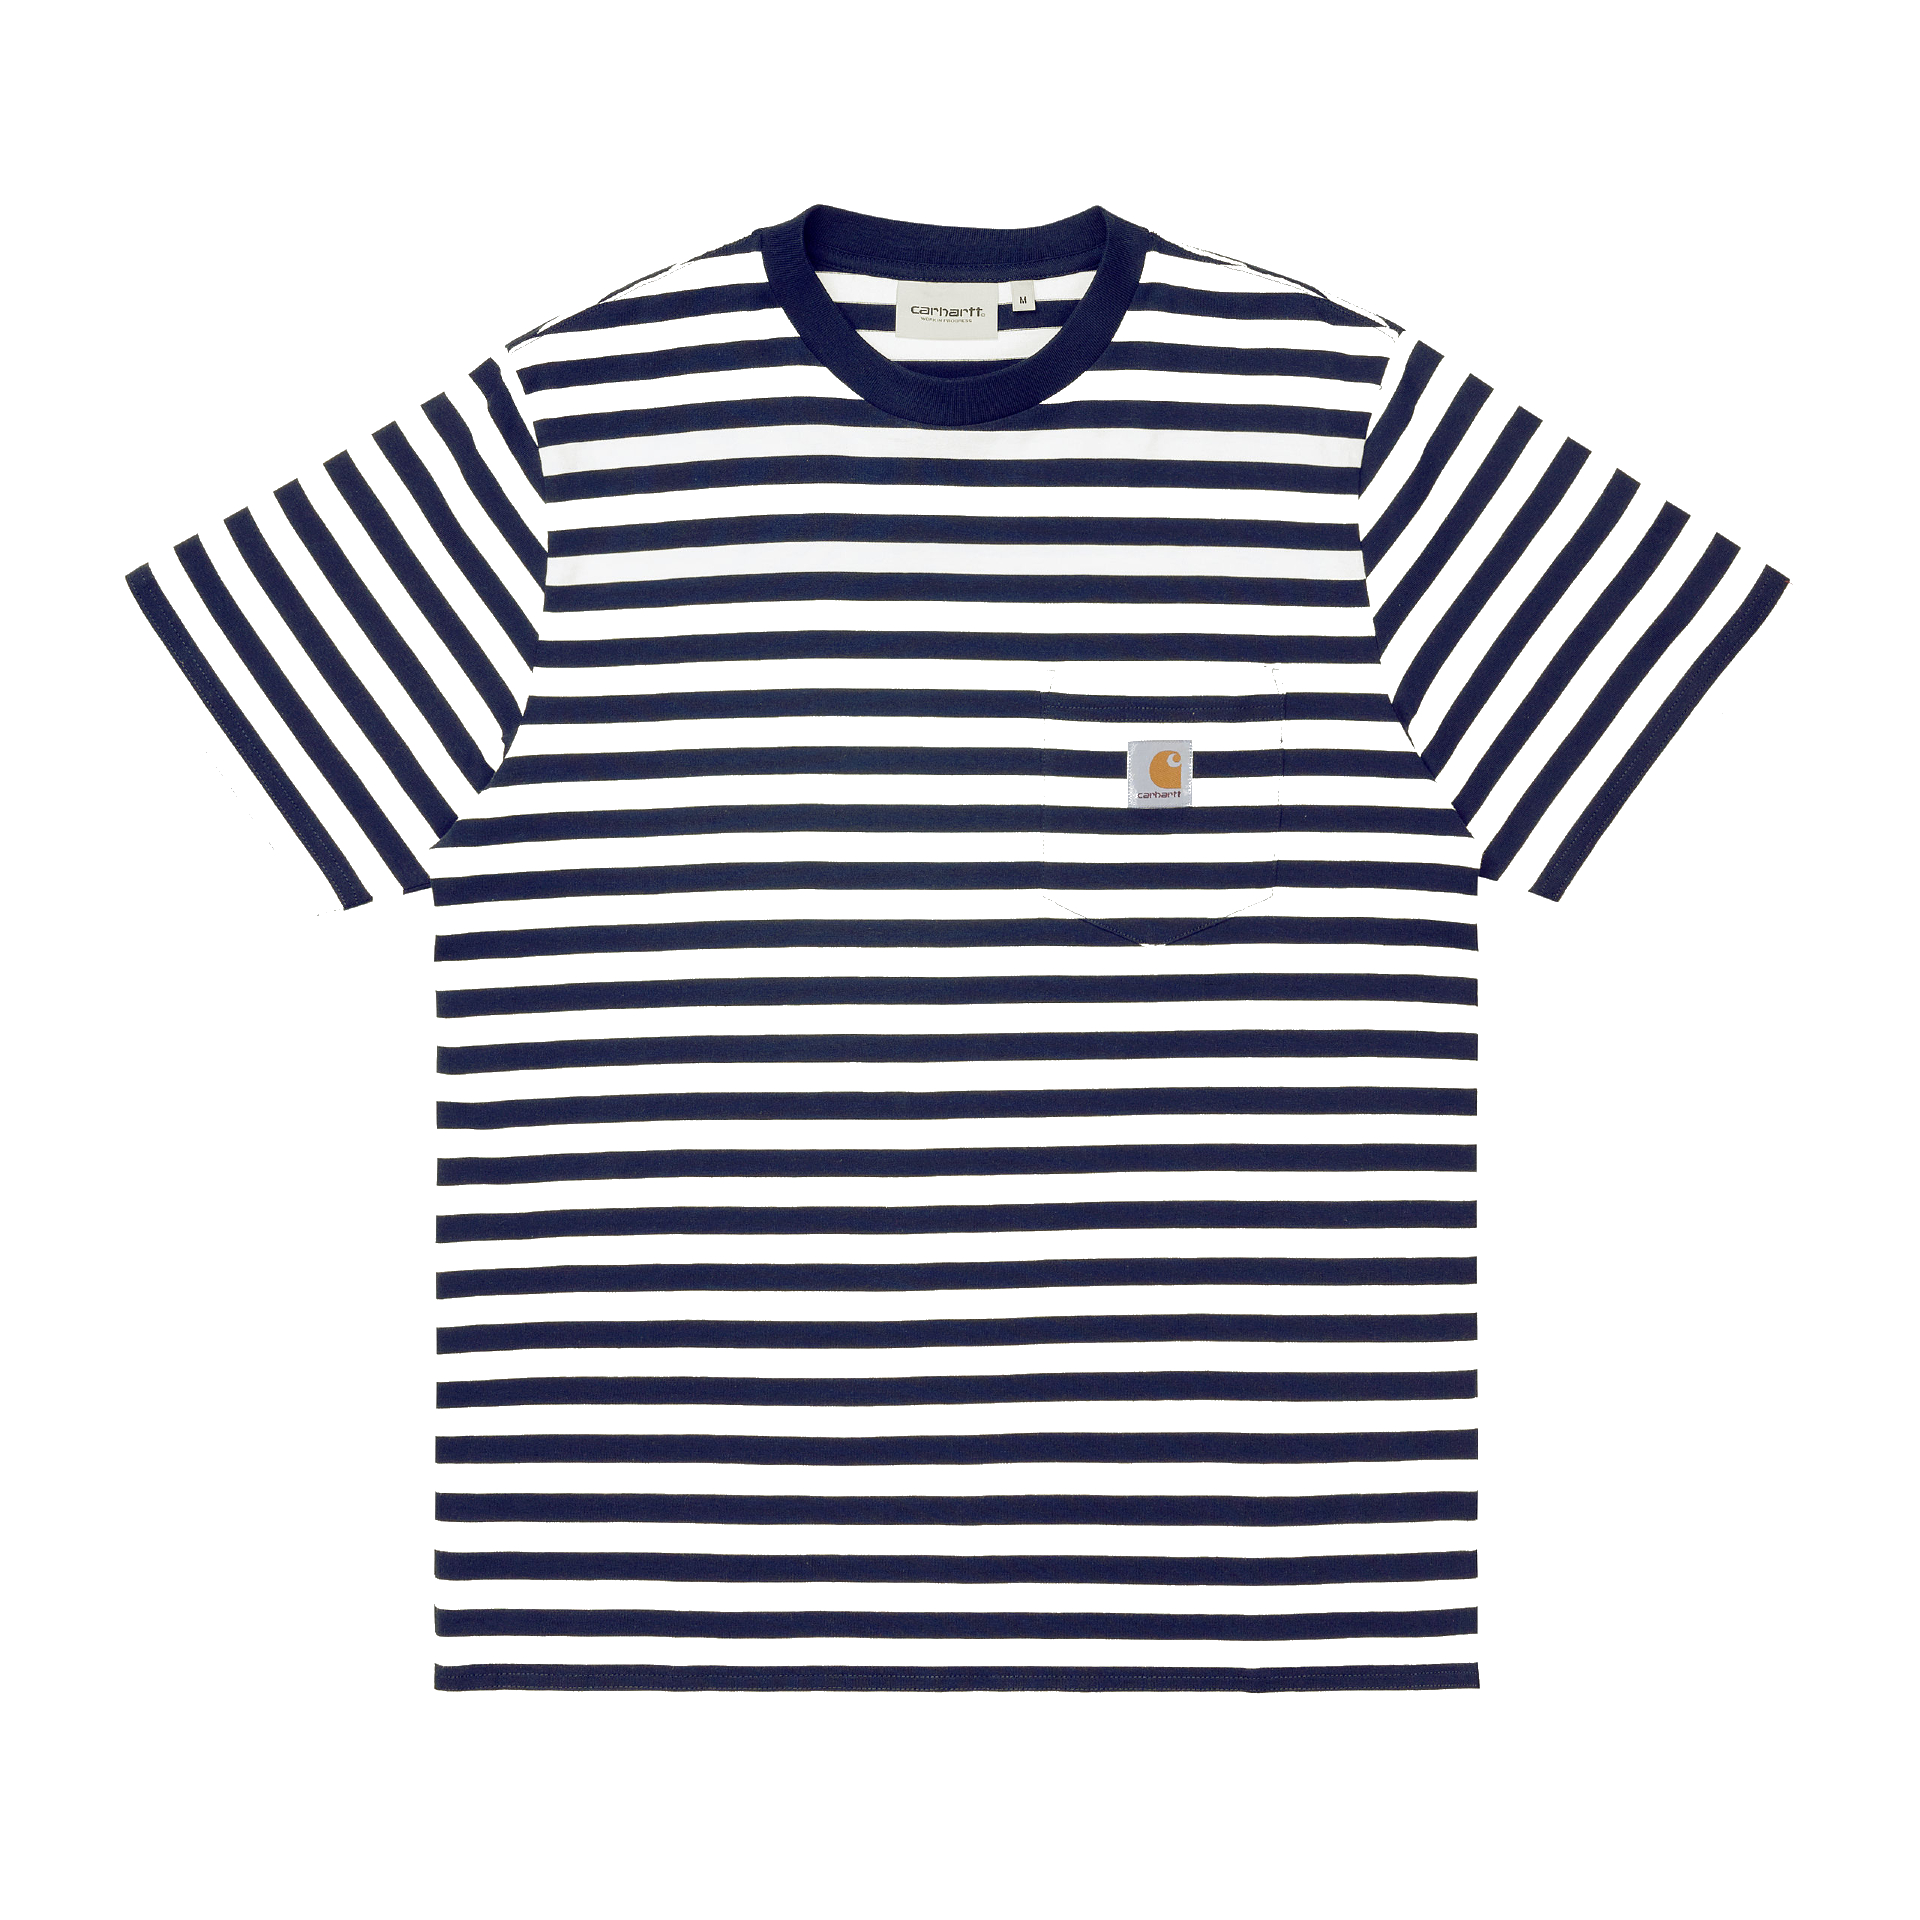 CARHARTT WIP SCOTTY POCKET SHORT SLEEVE T-SHIRT - SCOTTY STRIPE, DARK NAVY/WHITE